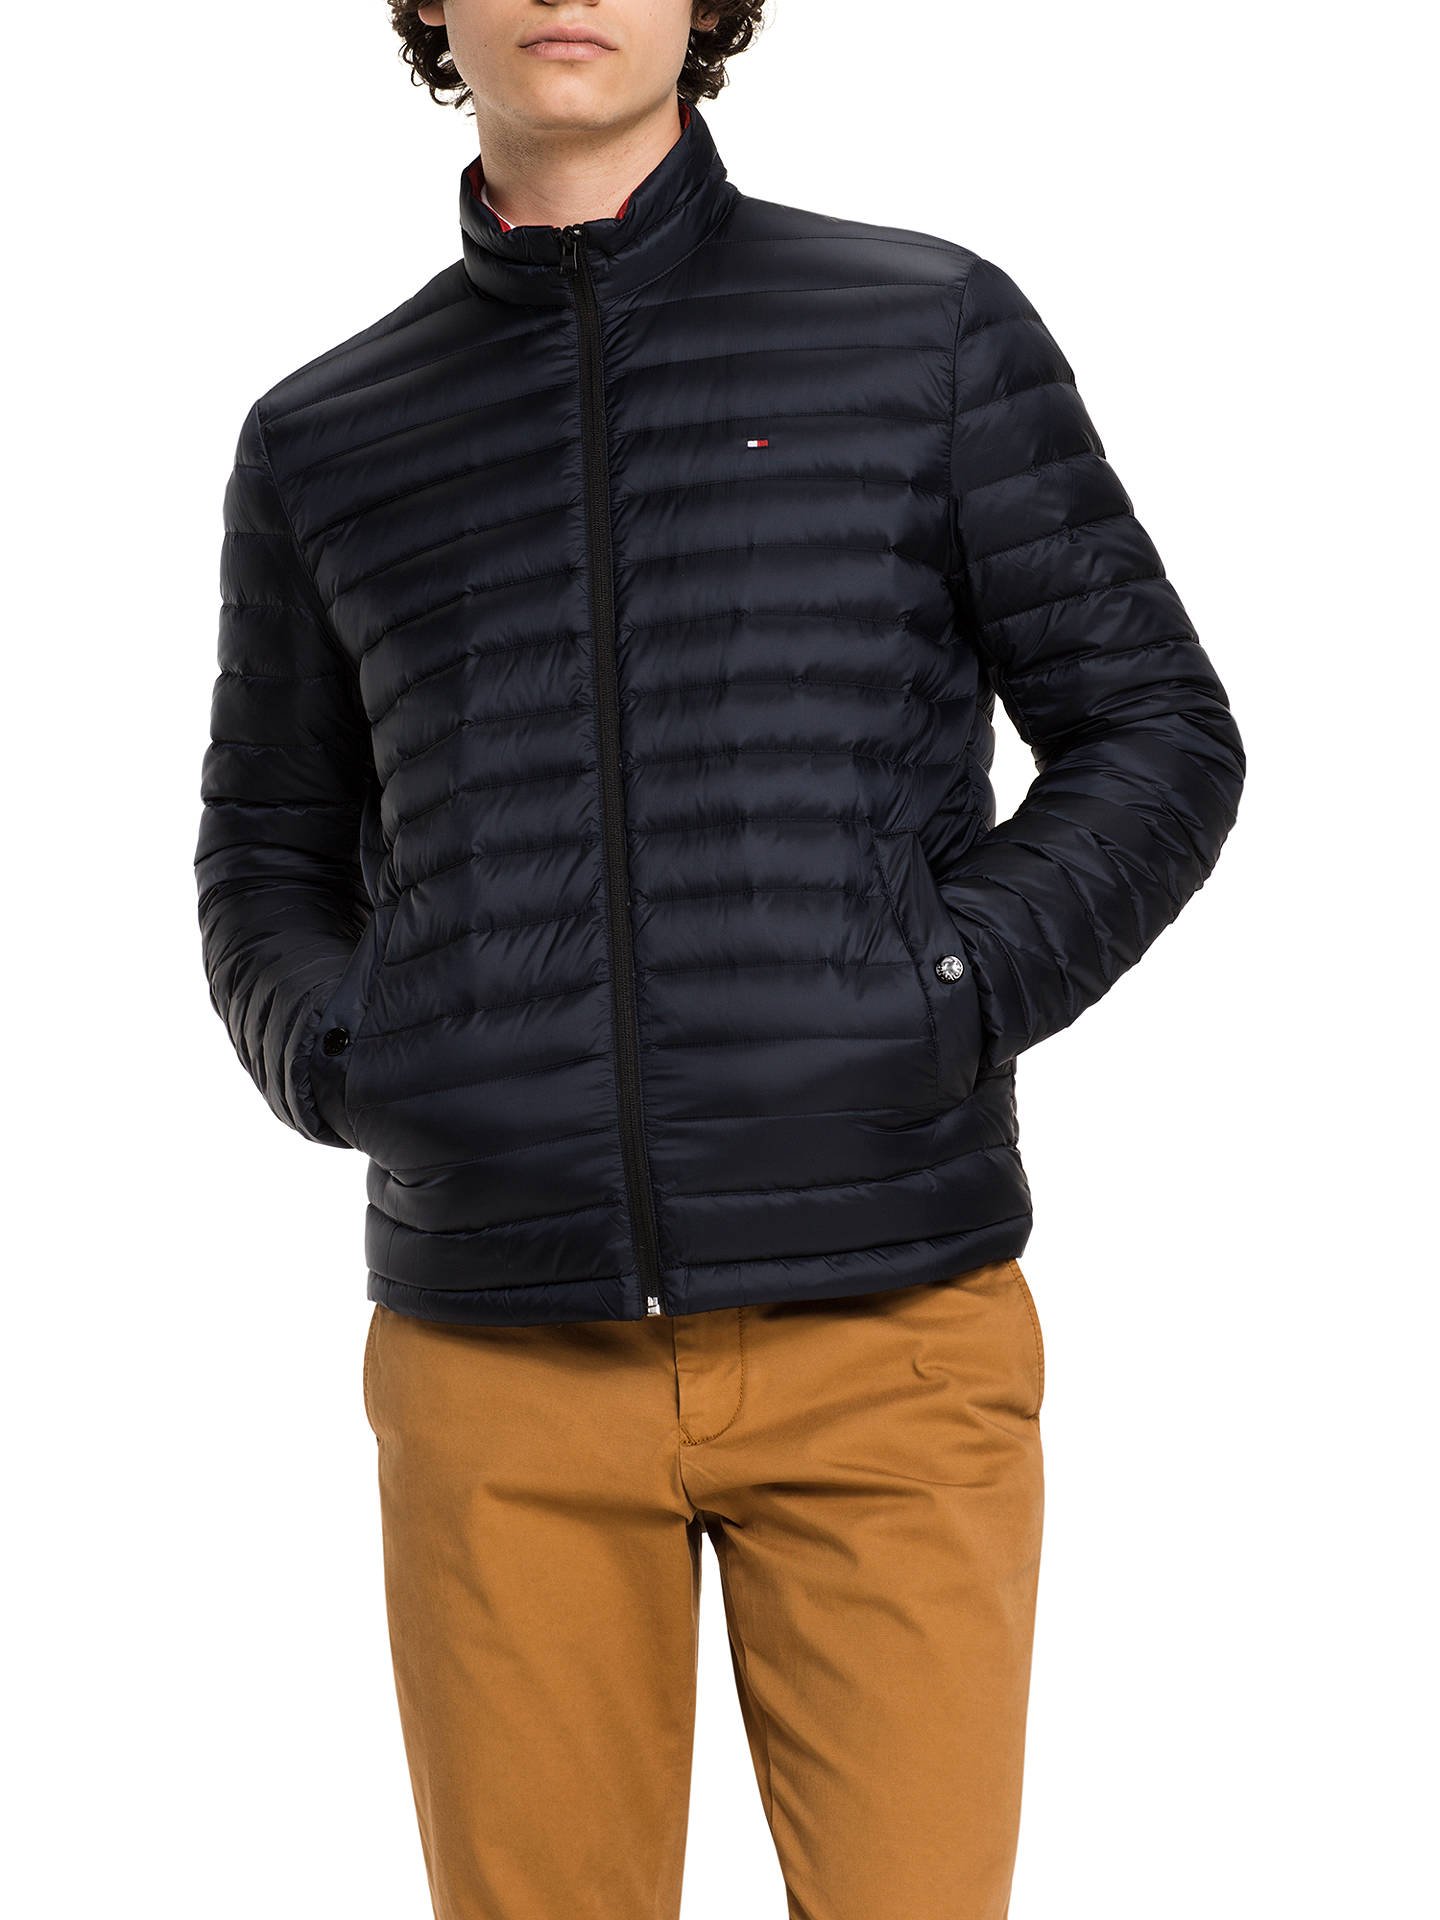 2614e657f31b0b Buy Tommy Hilfiger Packable Down Bomber Jacket